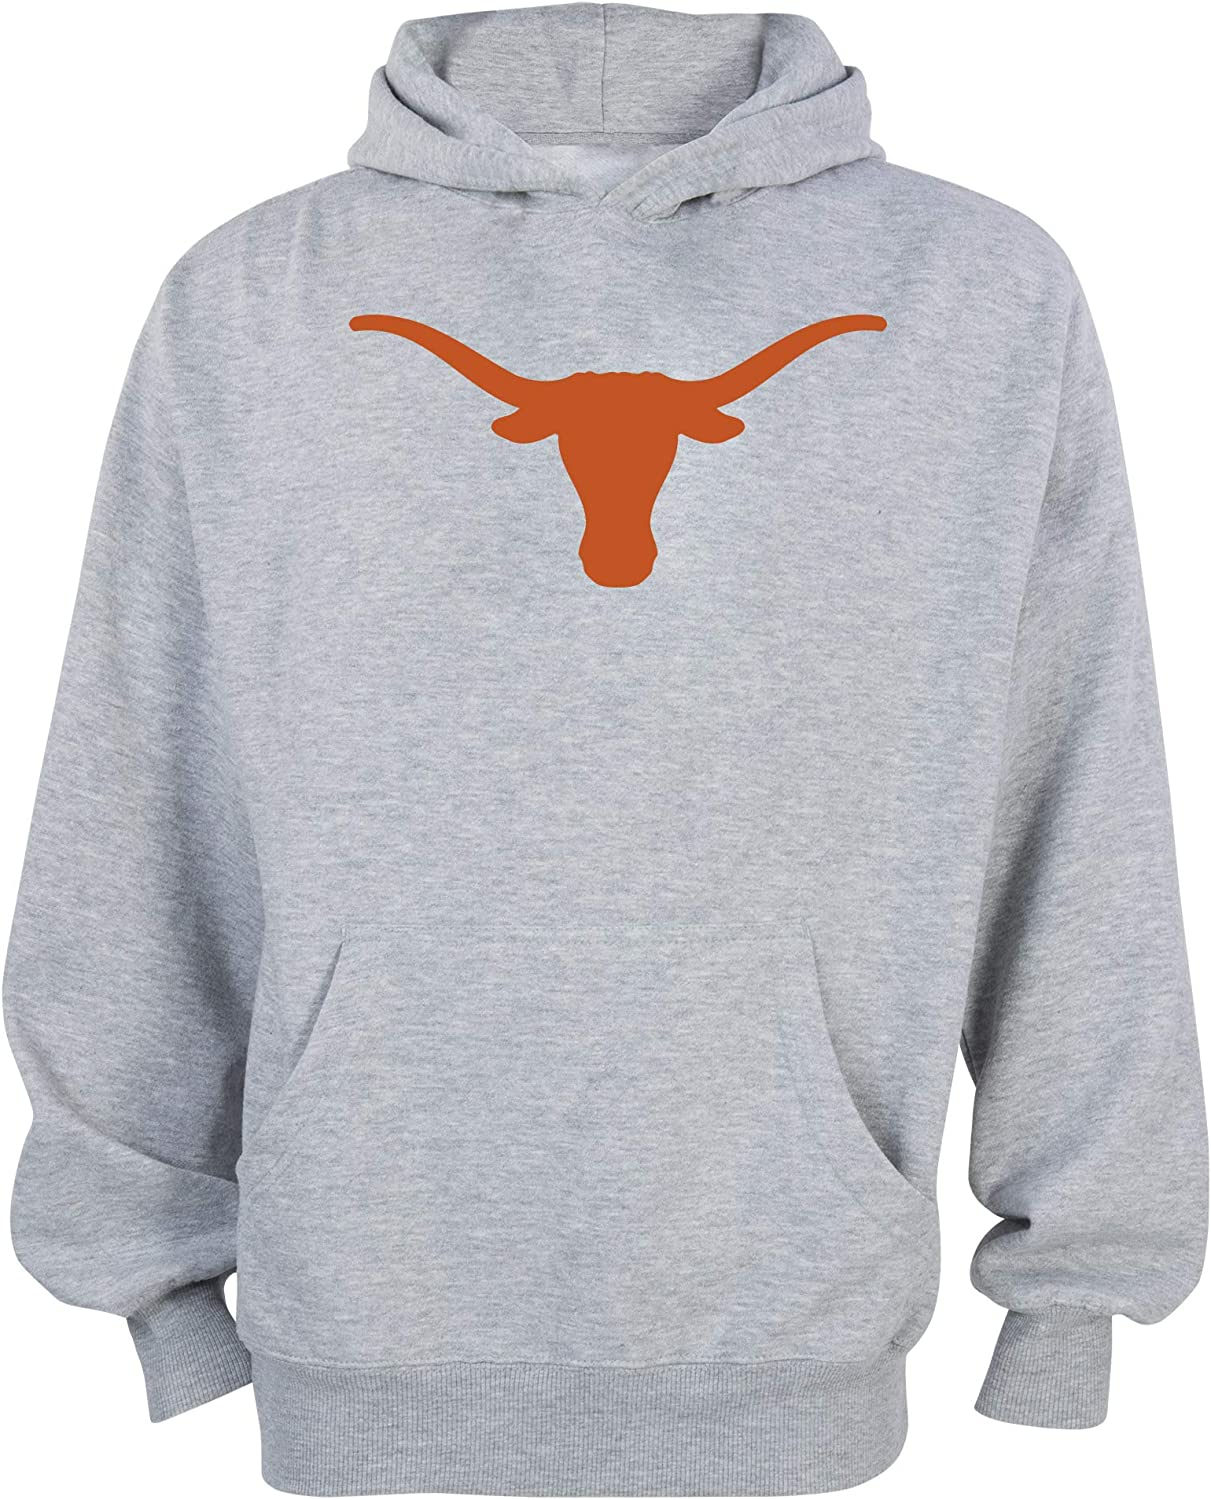 University of Oklahoma City Mall Texas Authentic Apparel Hoody Boys' Cotton Youth Today's only